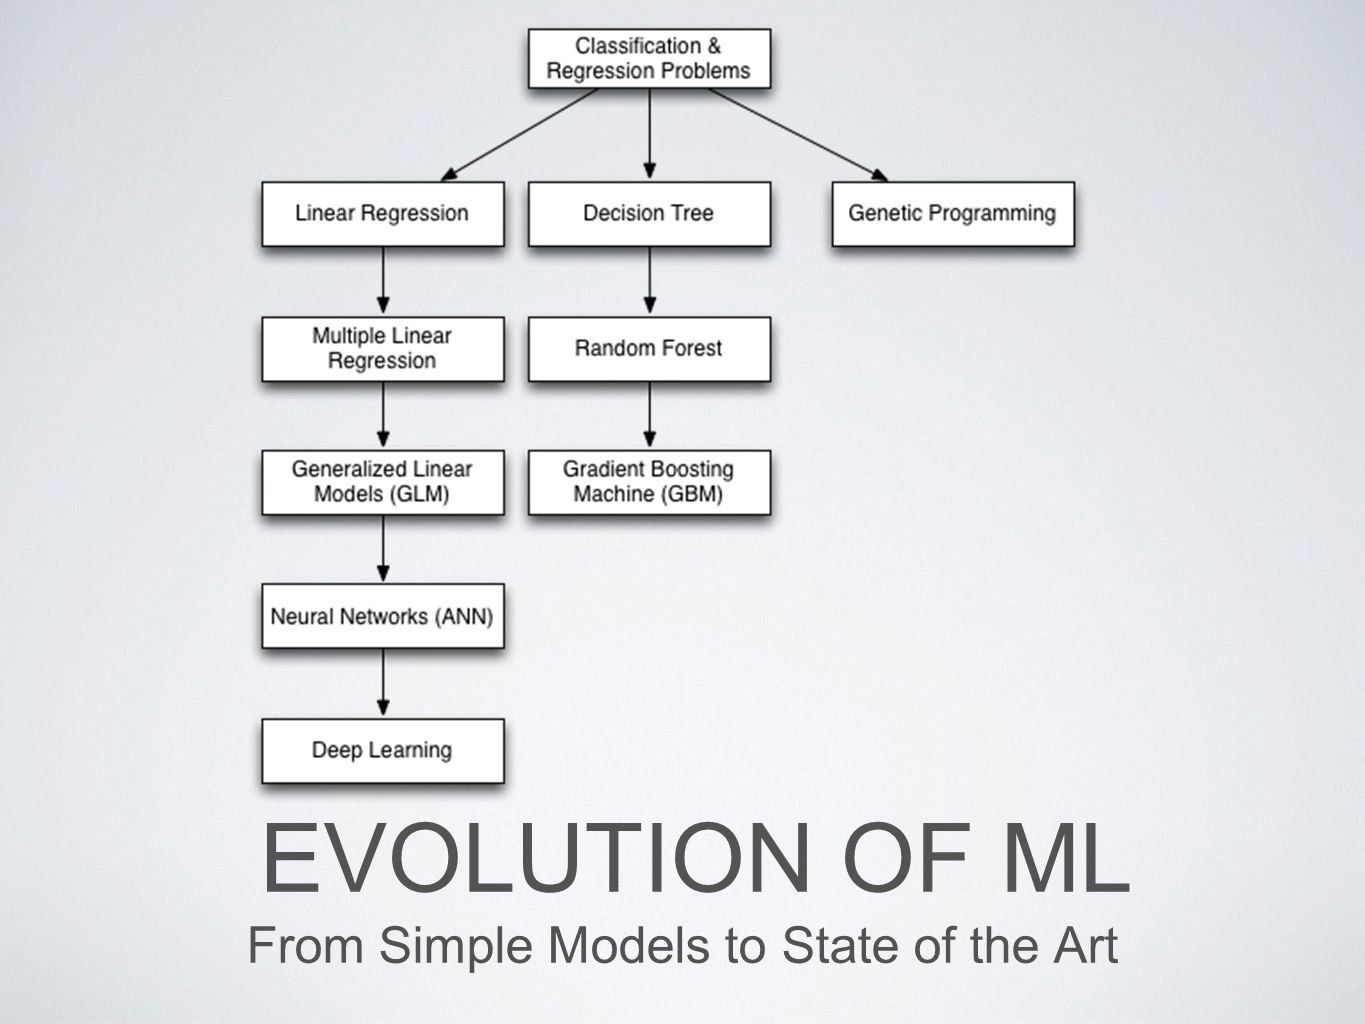 From Simple Models to State of the Art